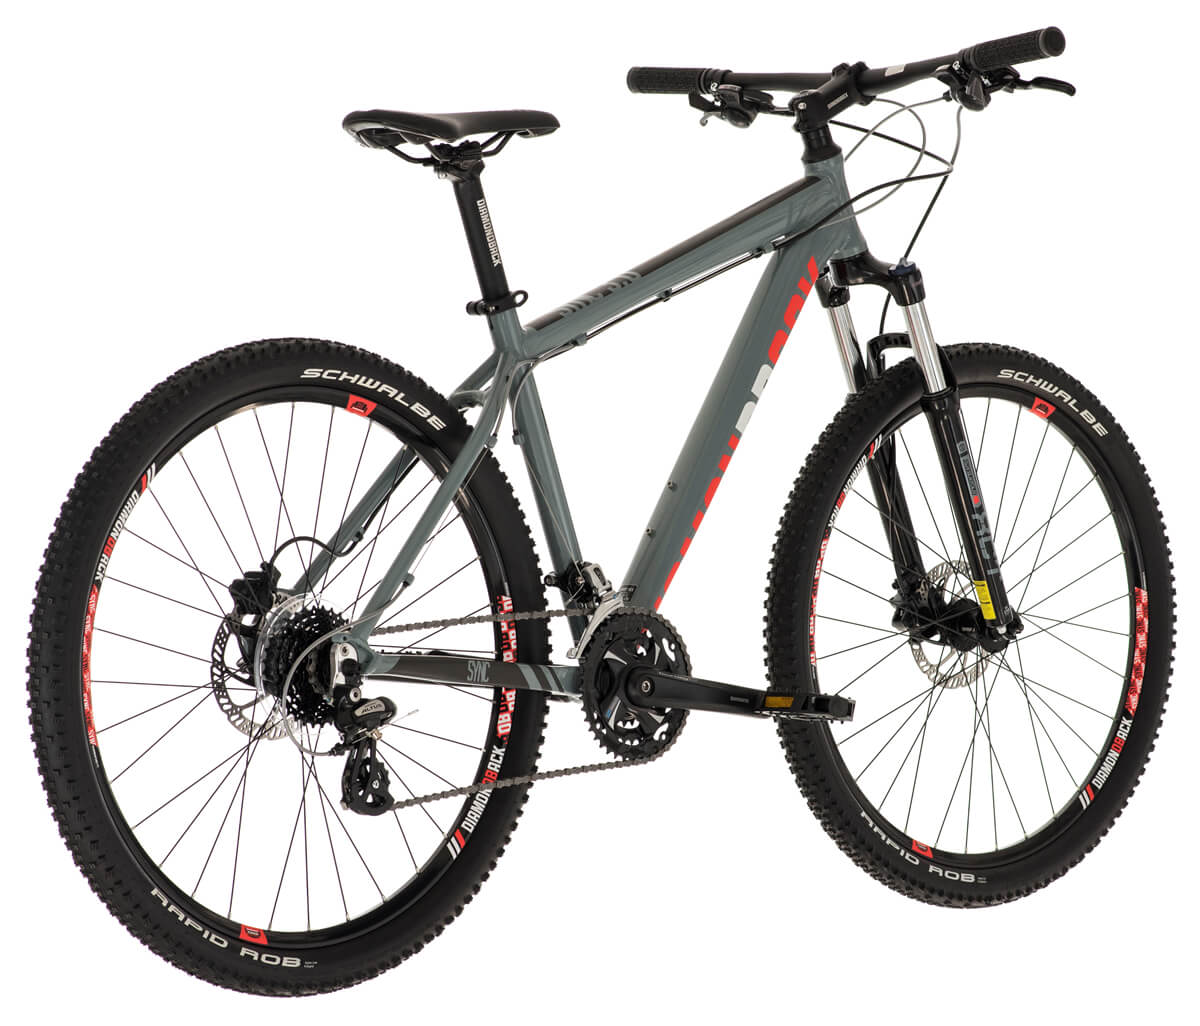 Best For Price Diamondback Sync 3 Mountain Bike Review